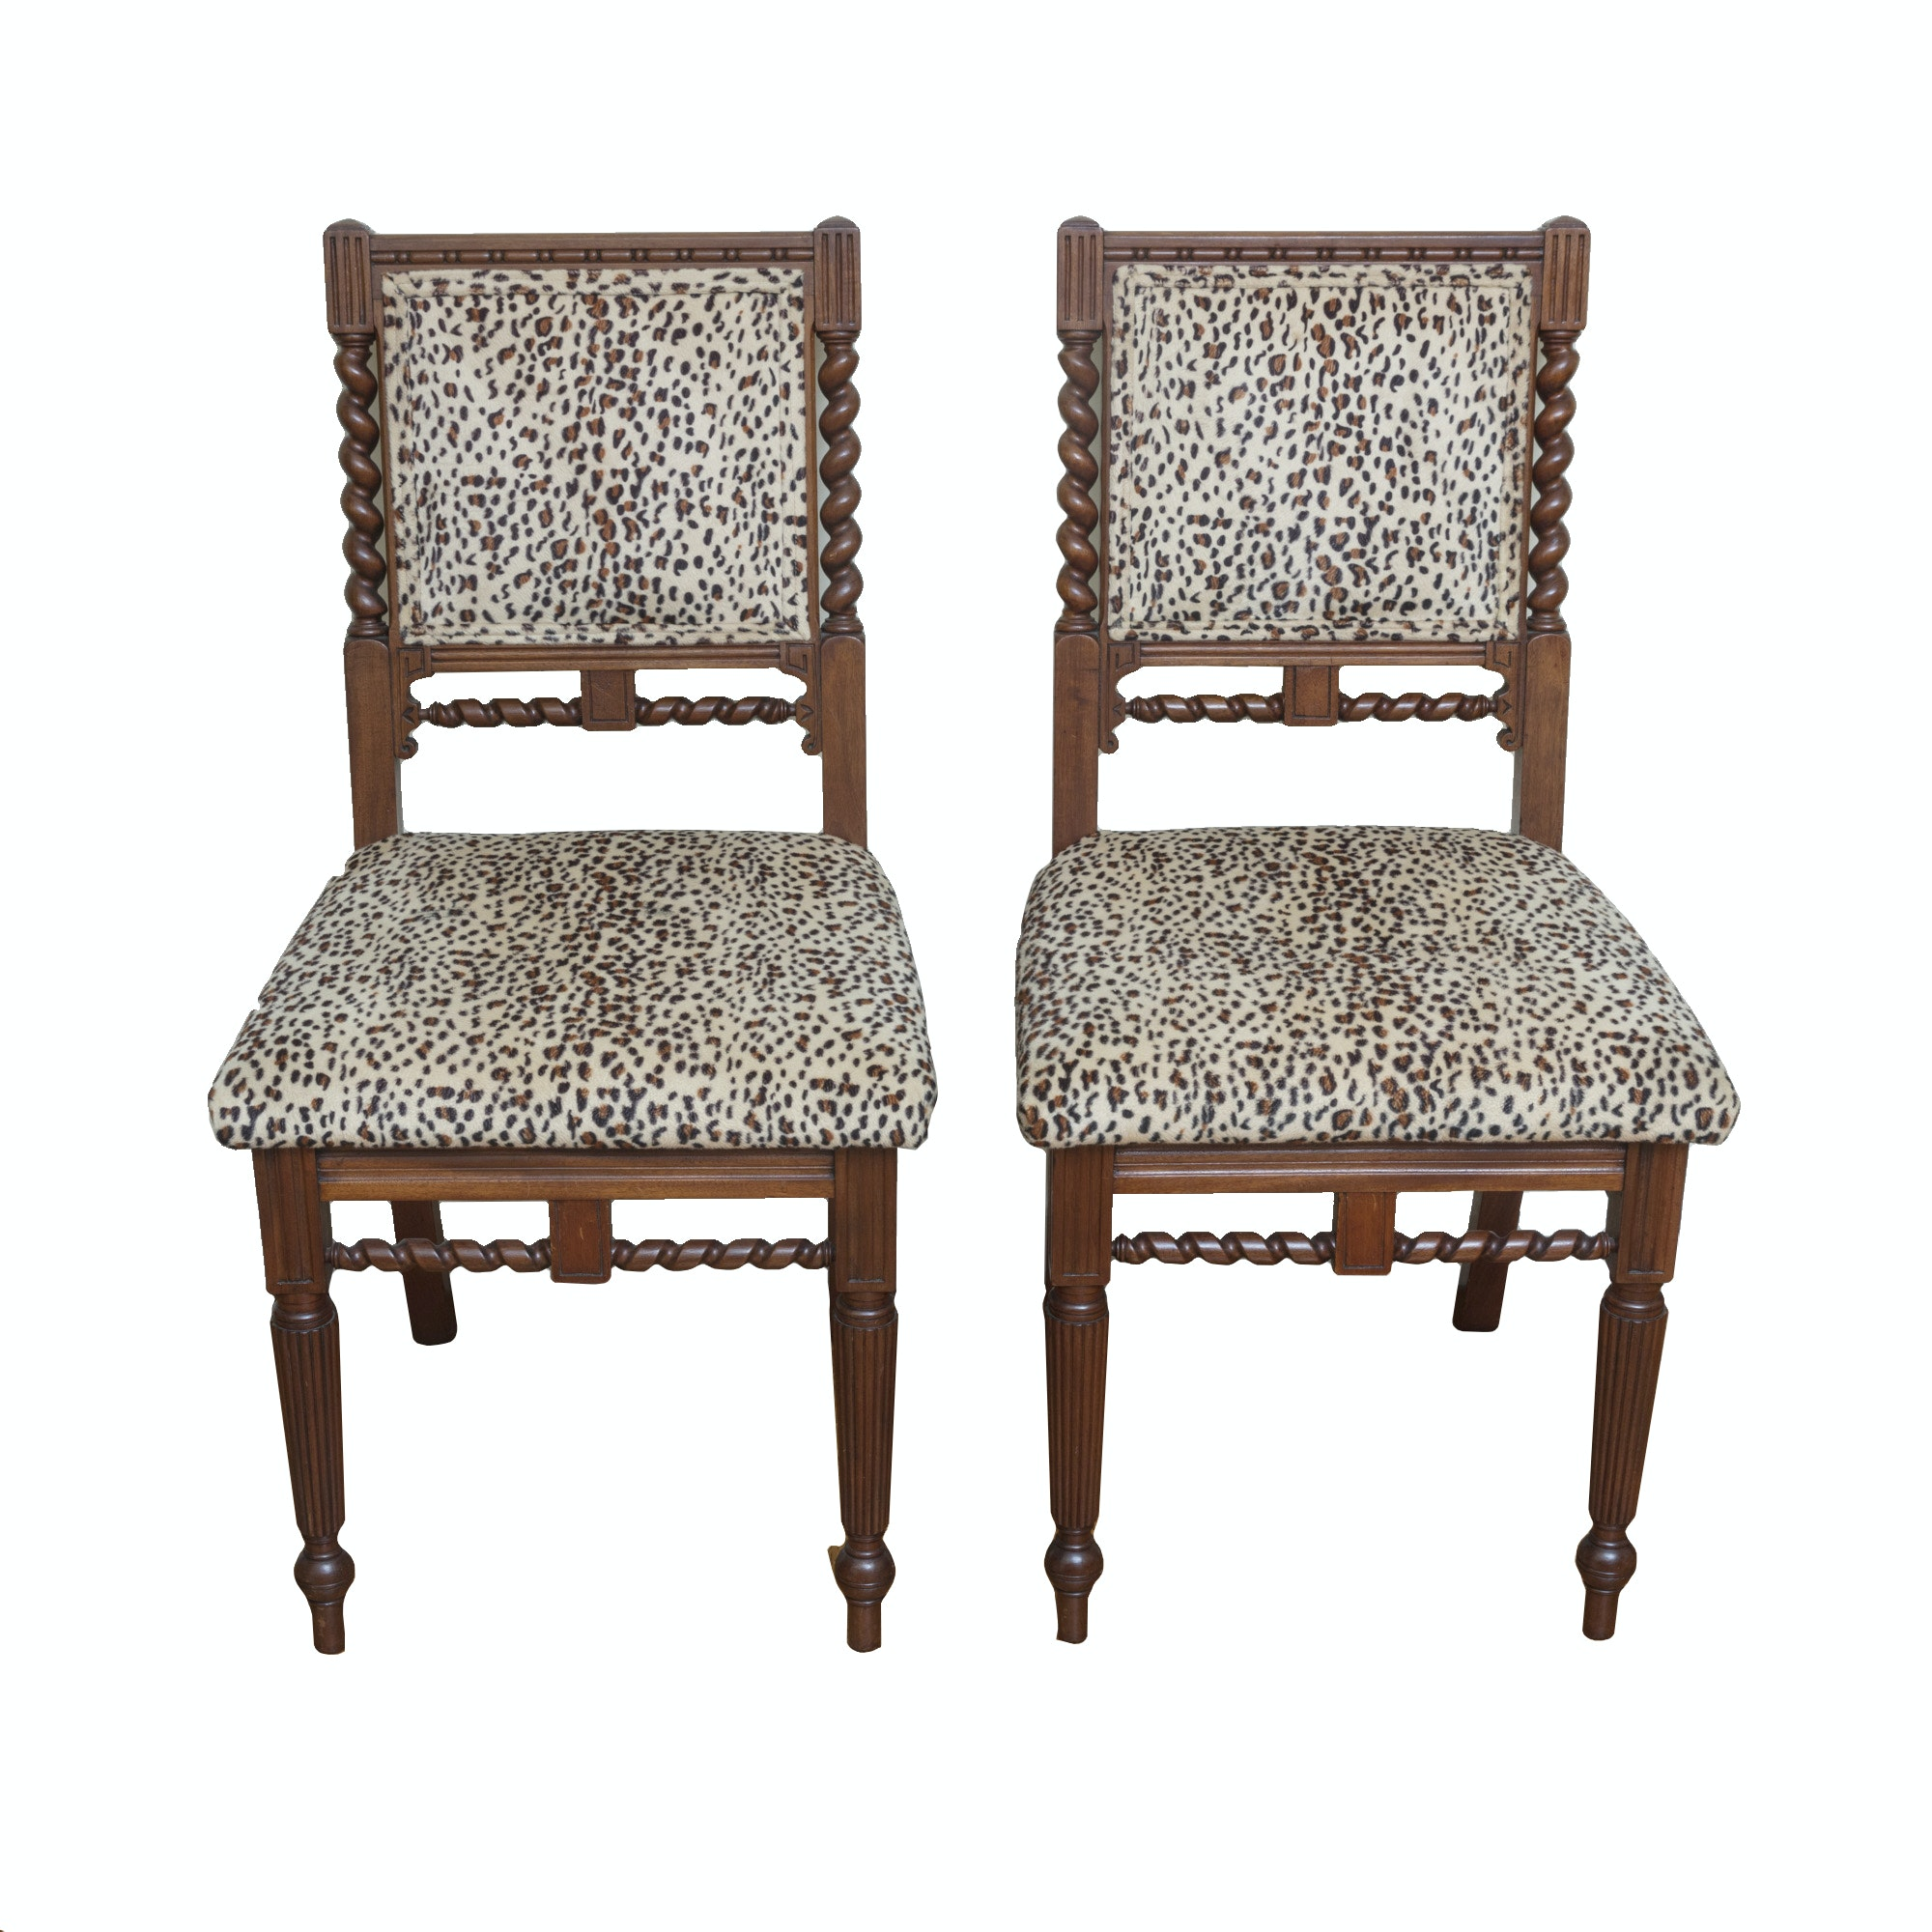 Ordinaire Barley Twist Chairs With Leopard Upholstery ...